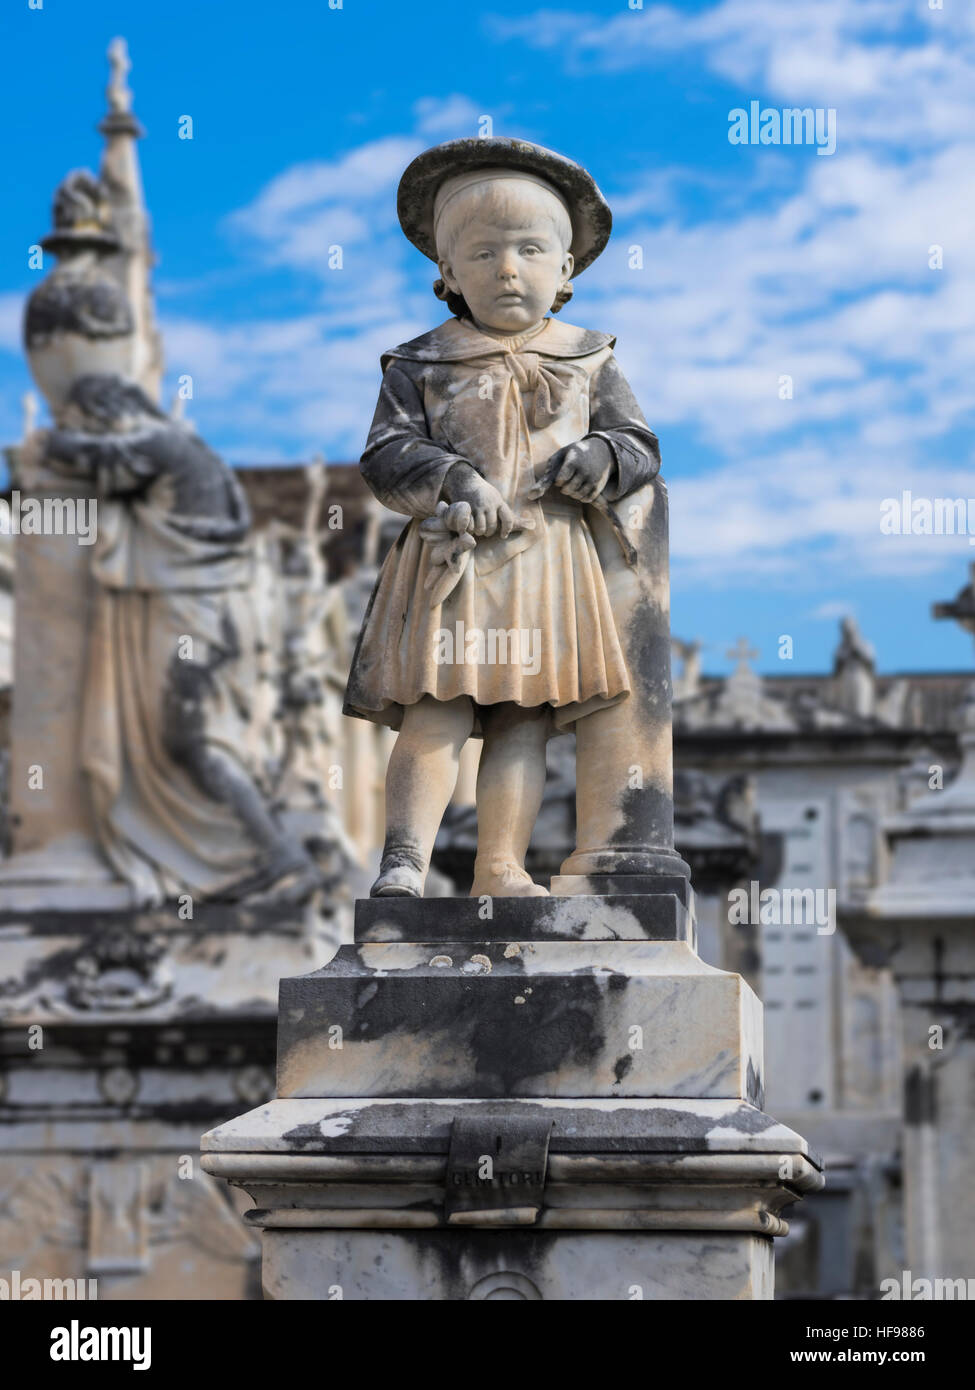 Marble statue on a 19th century child's grave on the cemetery of Lavagna, Liguria, Italy, - Stock Image